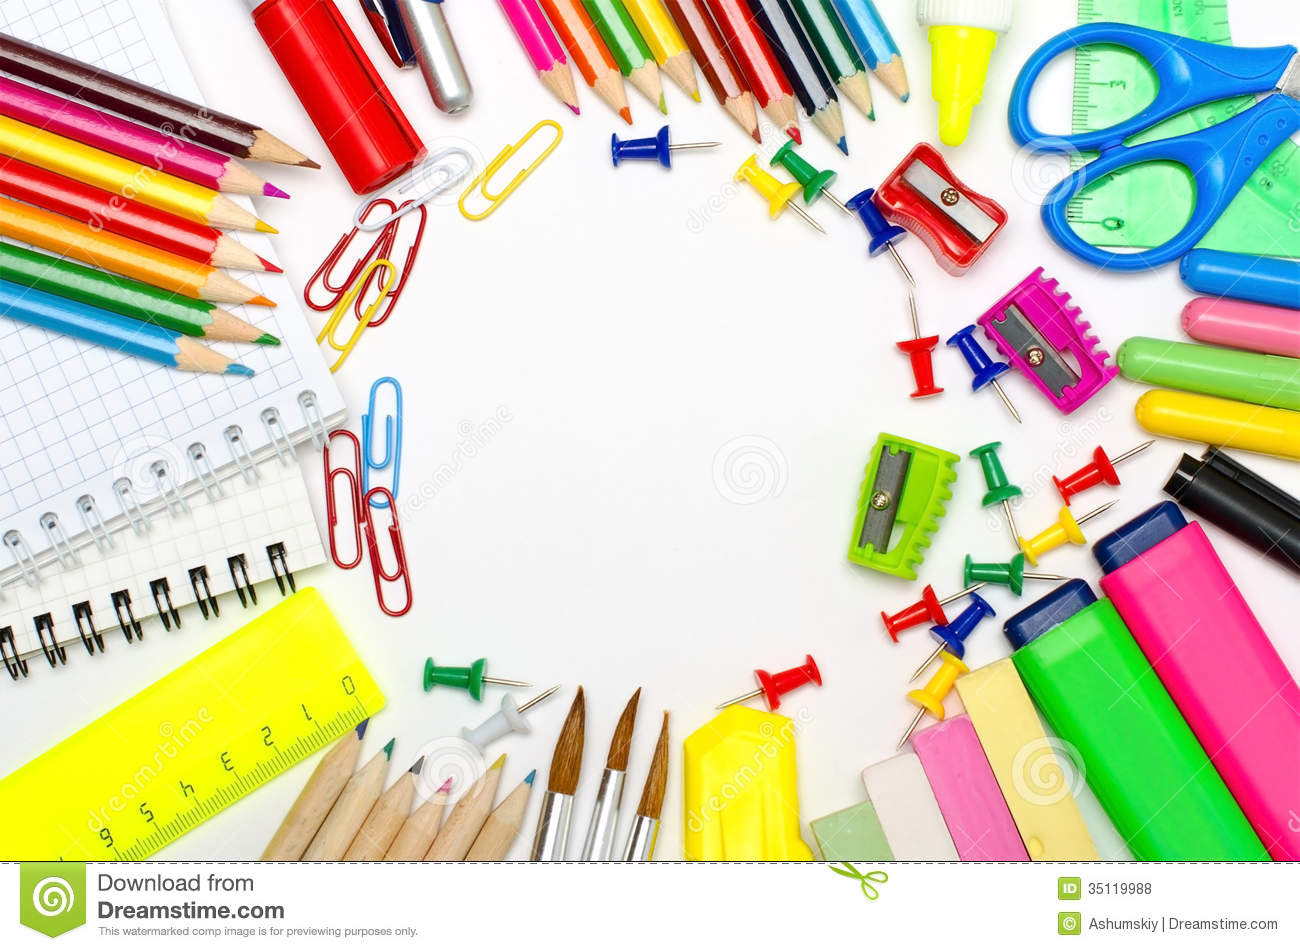 Stationery clipart free.